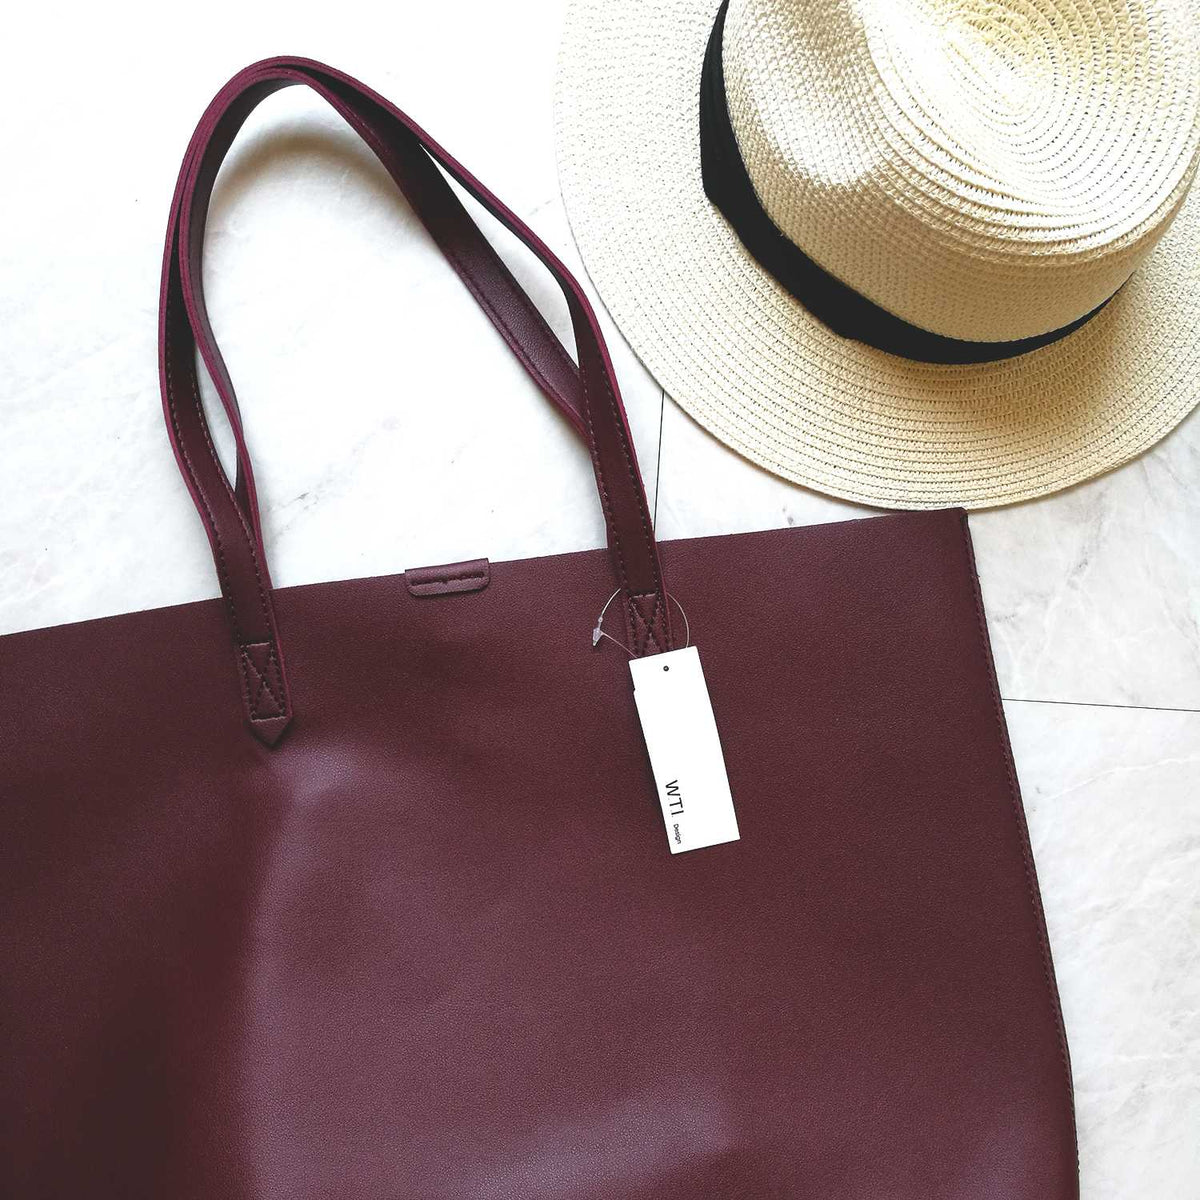 Oversized Brown Faux Leather Tote Bag - Burnt Orange - worthtryit.com